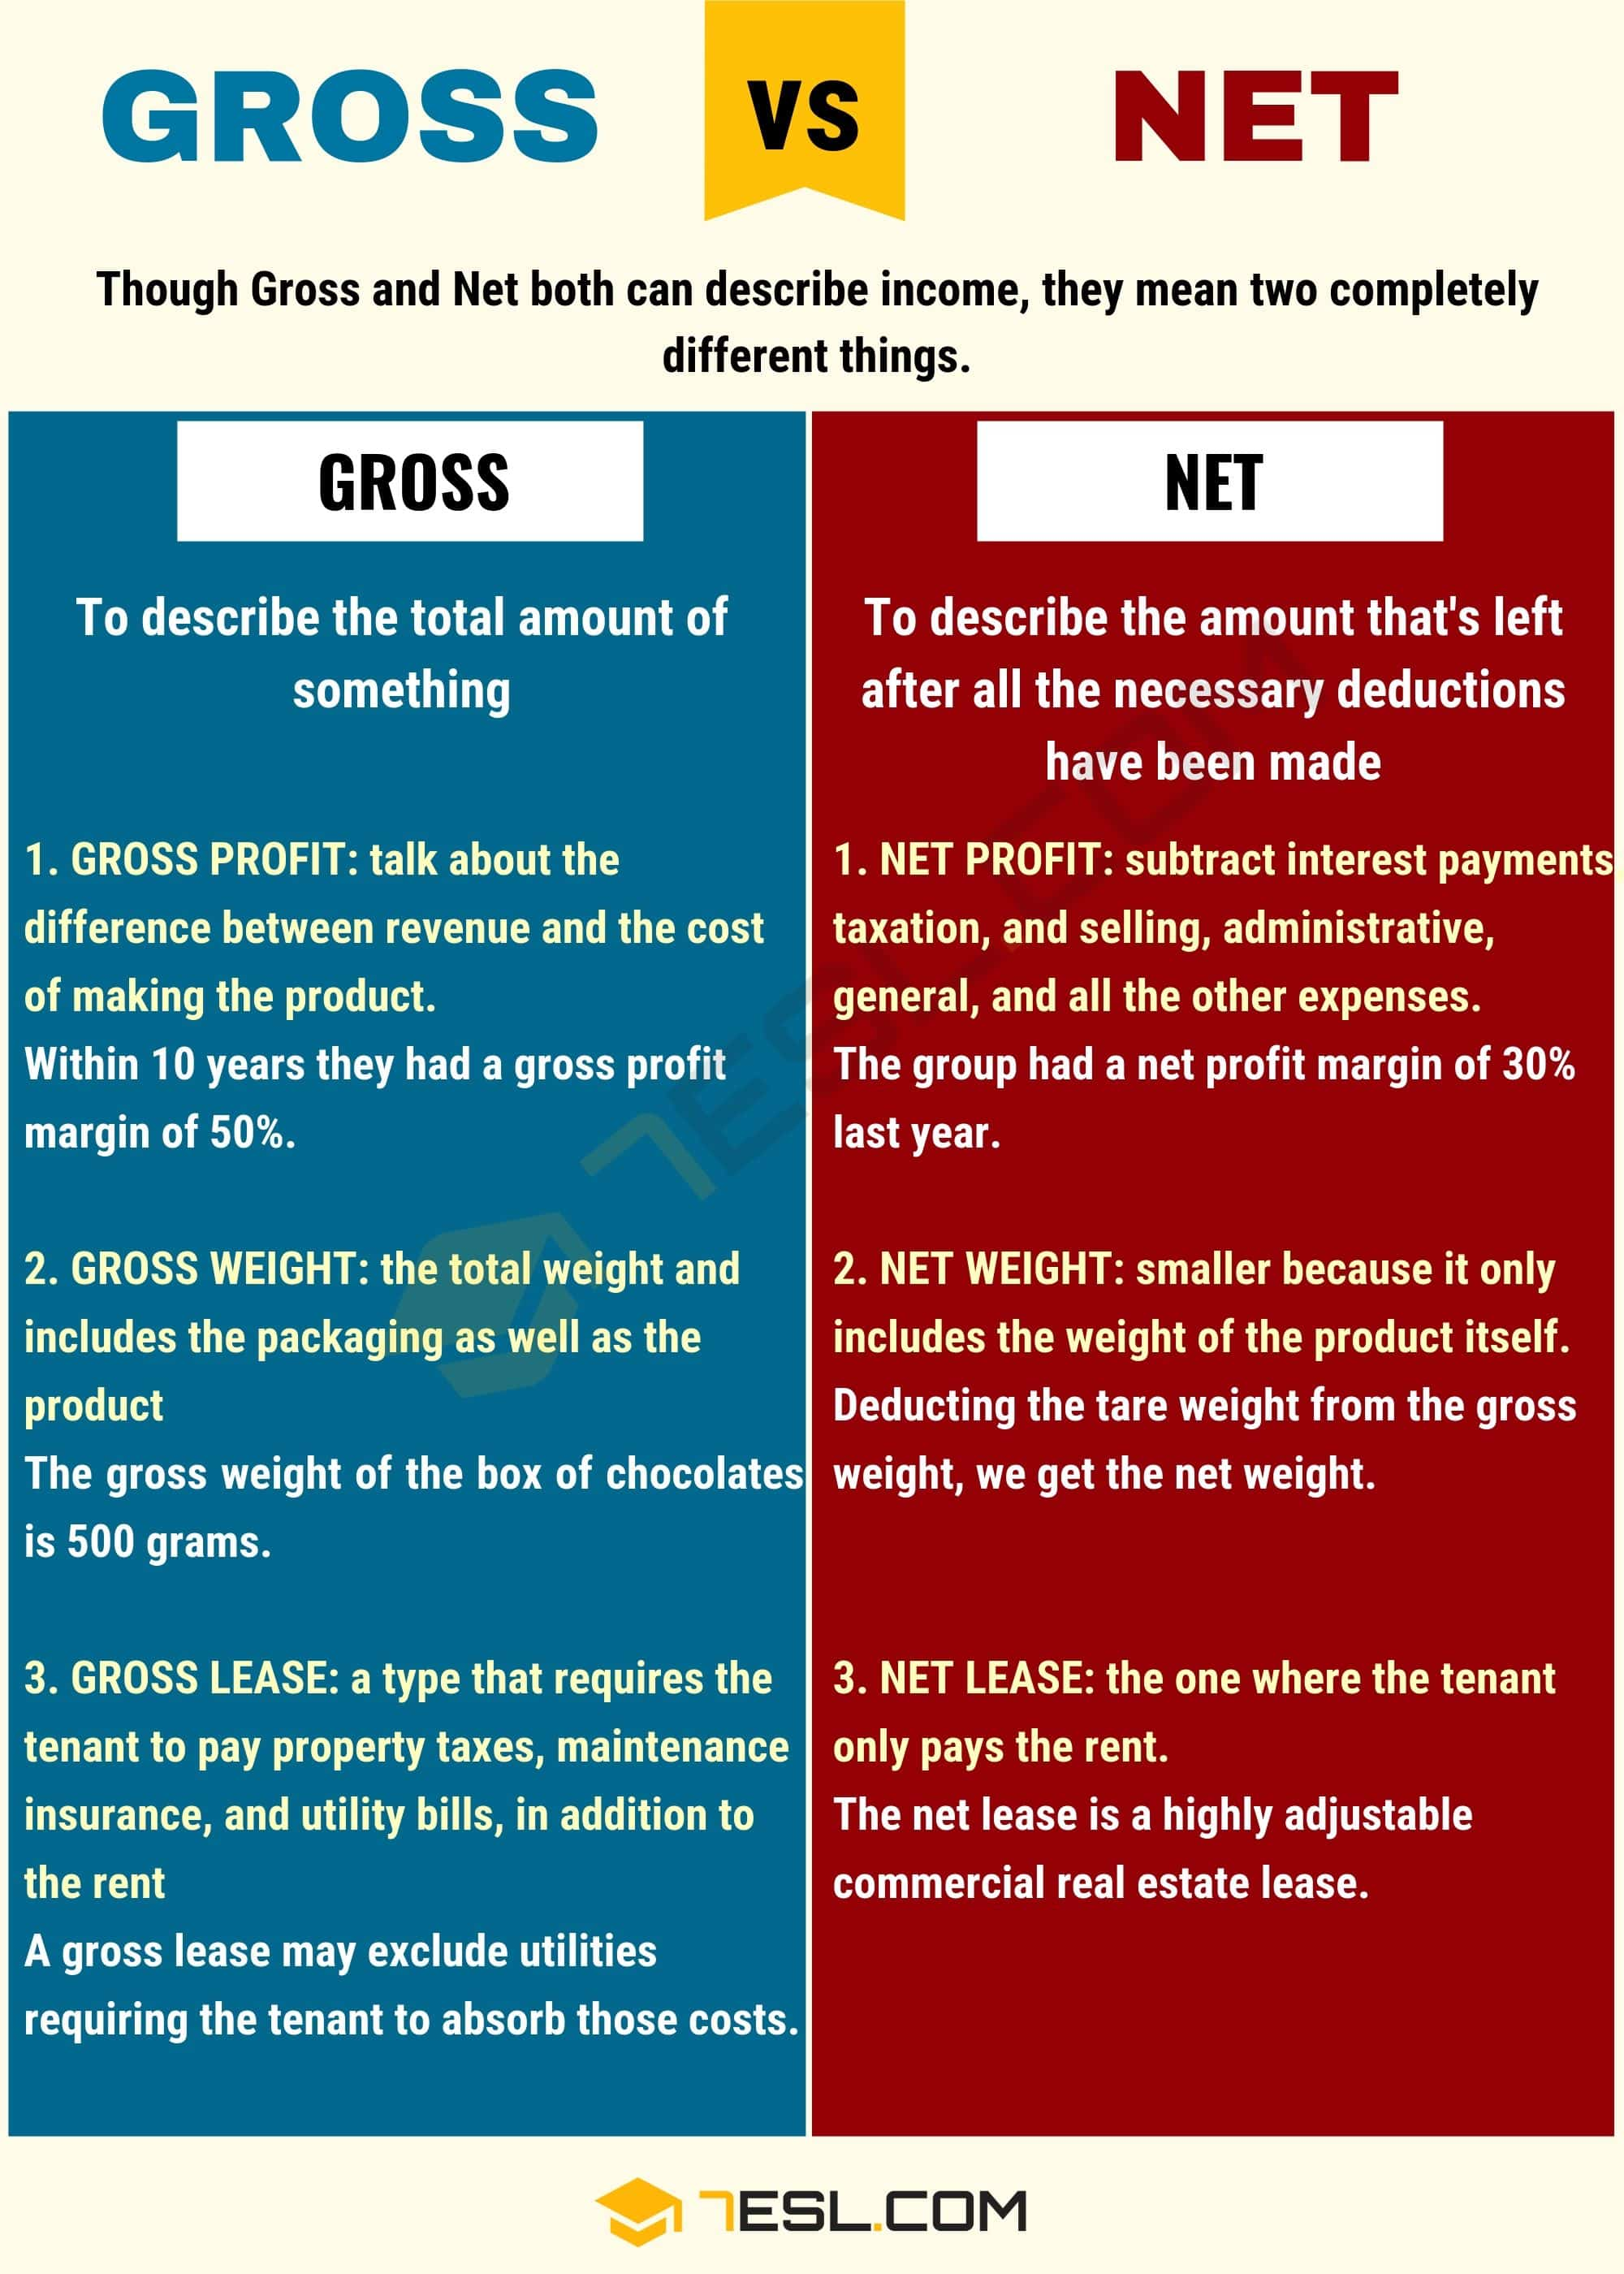 GROSS vs NET